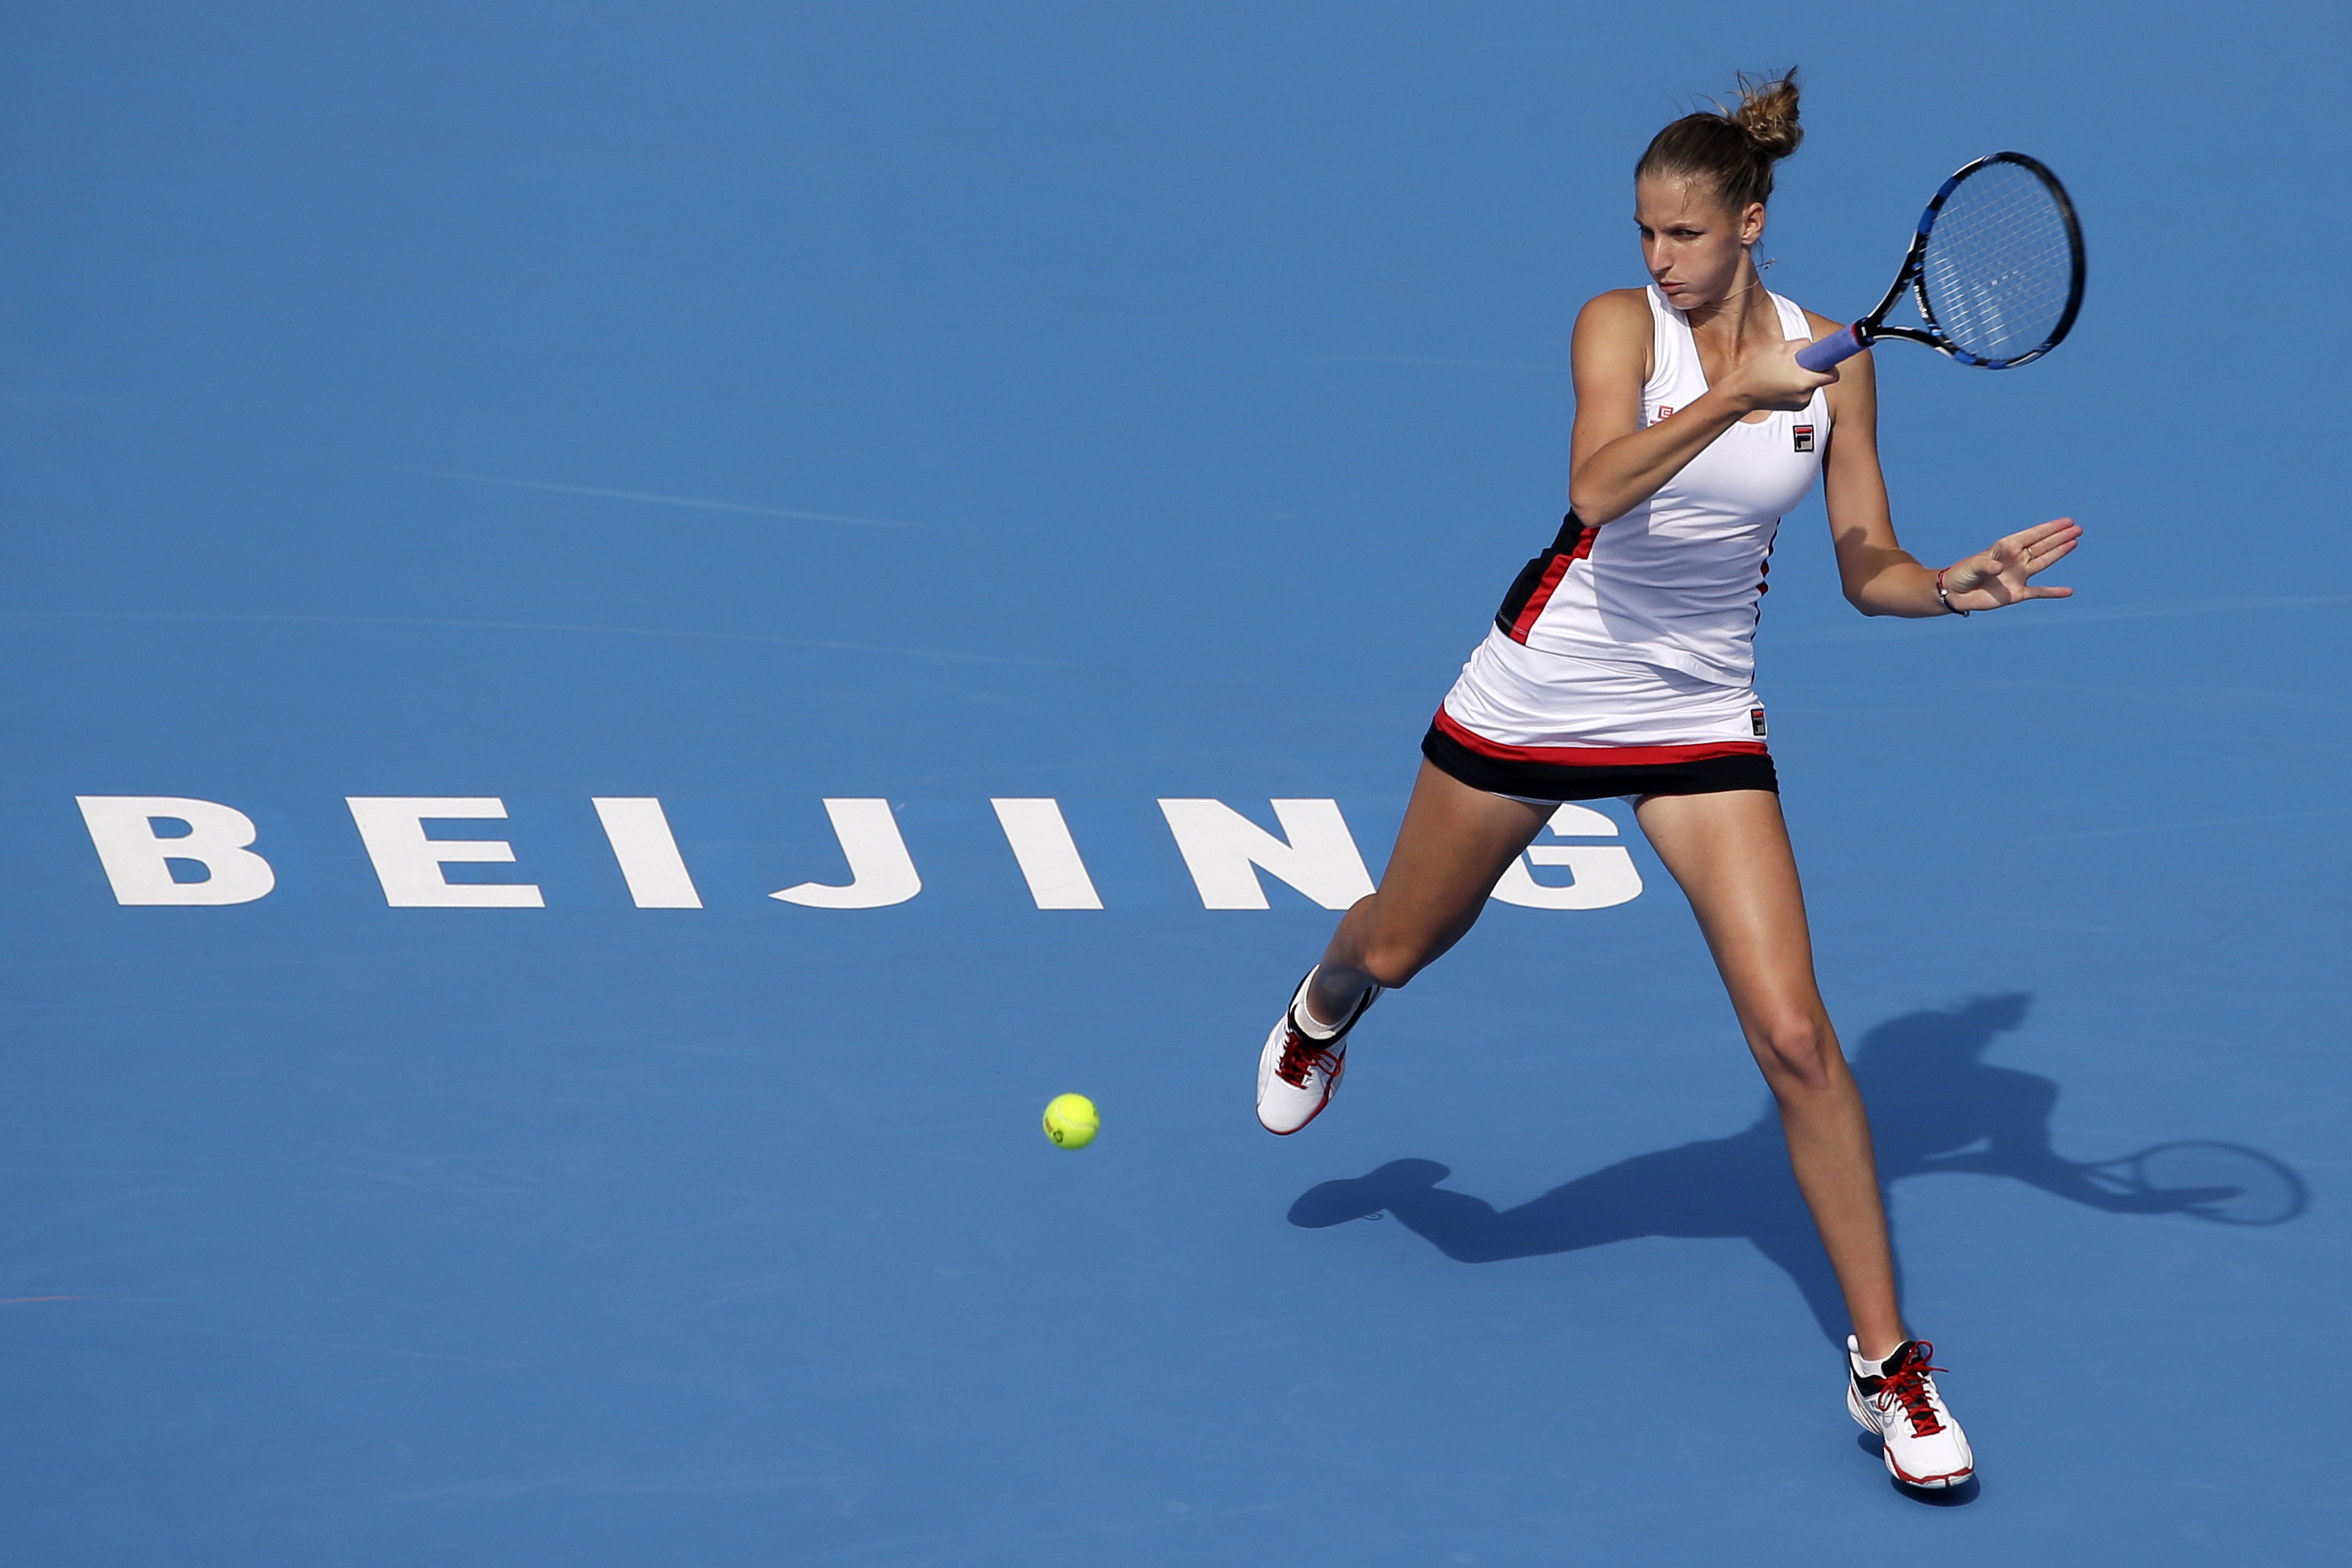 Karolina Pliskova of the Czech Republic hits a return shot against Daria Kasatkina of Russia during their women's singles match of the China Open tennis tournament at the Lotus Court in Beijing, Wednesday, Oct. 5, 2016. (AP Photo/Andy Wong)